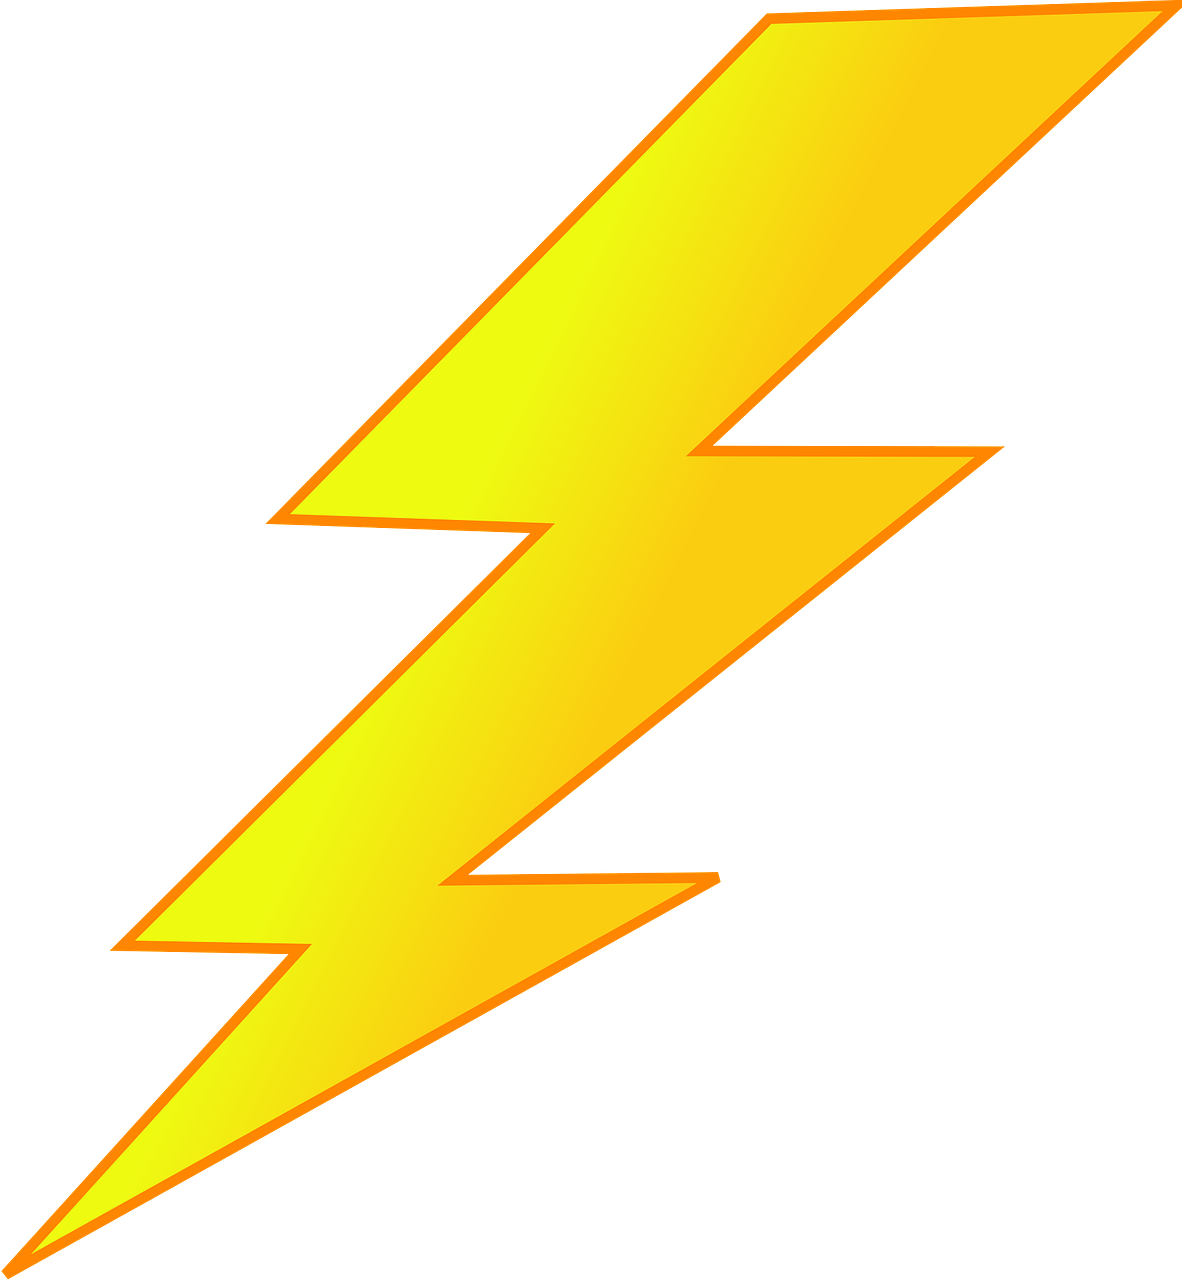 Graphic Royalty Free Lighting Bolt Picture Transparent Background Lightning Clipart Png Full Size Clipart 204097 Pinclipart